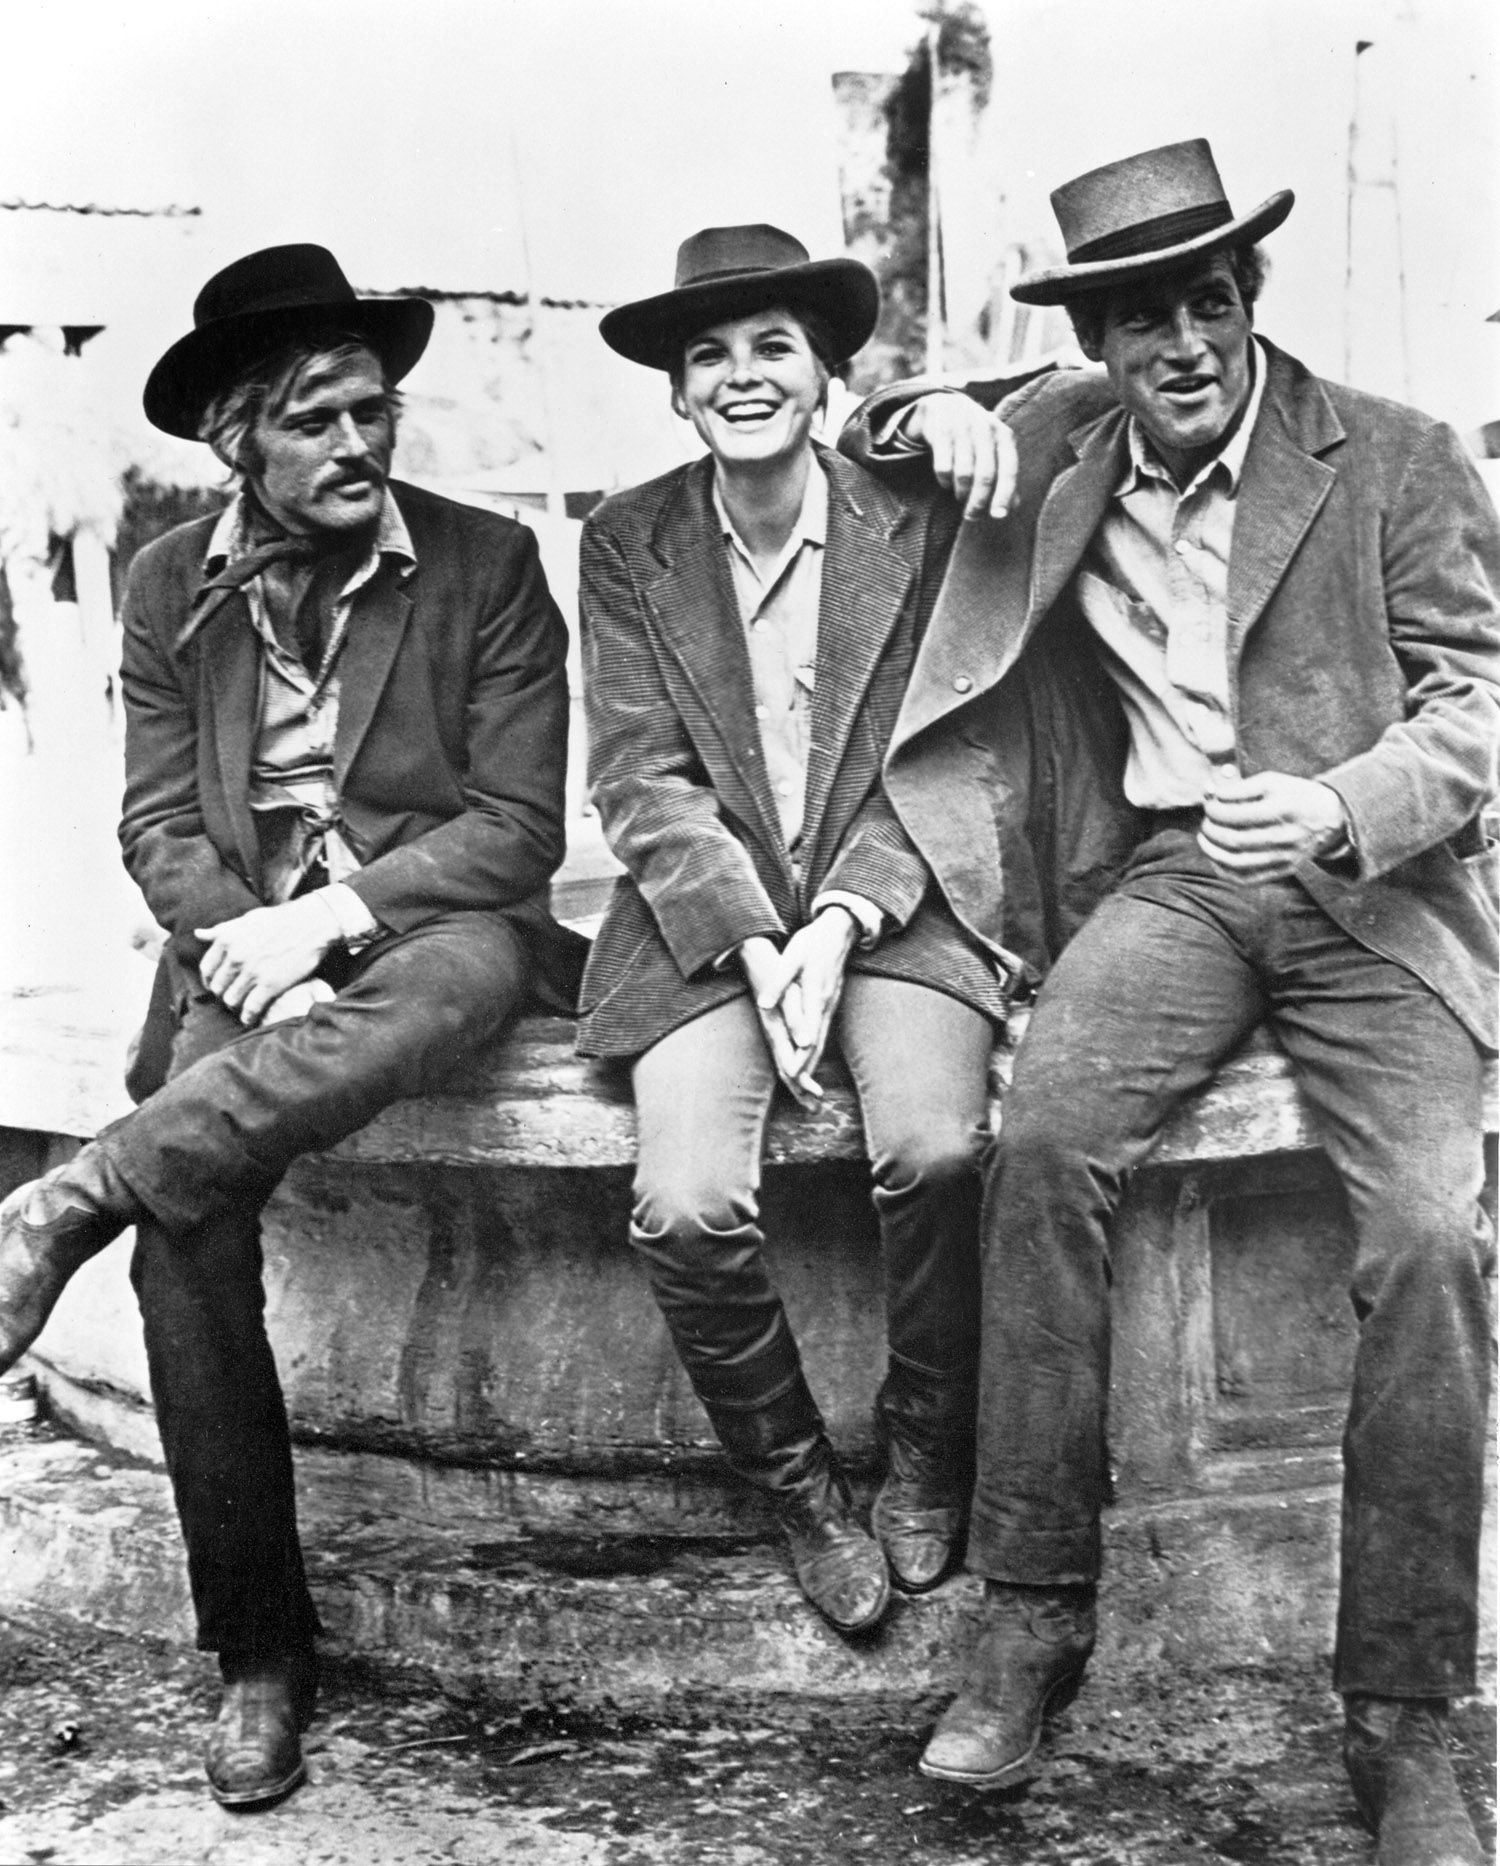 review butch cassidy and the sundance One could [say] that butch cassidy & the sundance kid set the benchmark for buddy action-comedies to come, but there would never be another film that comes even close to exuding the same kind of charm newman and redford deliver in their roles.